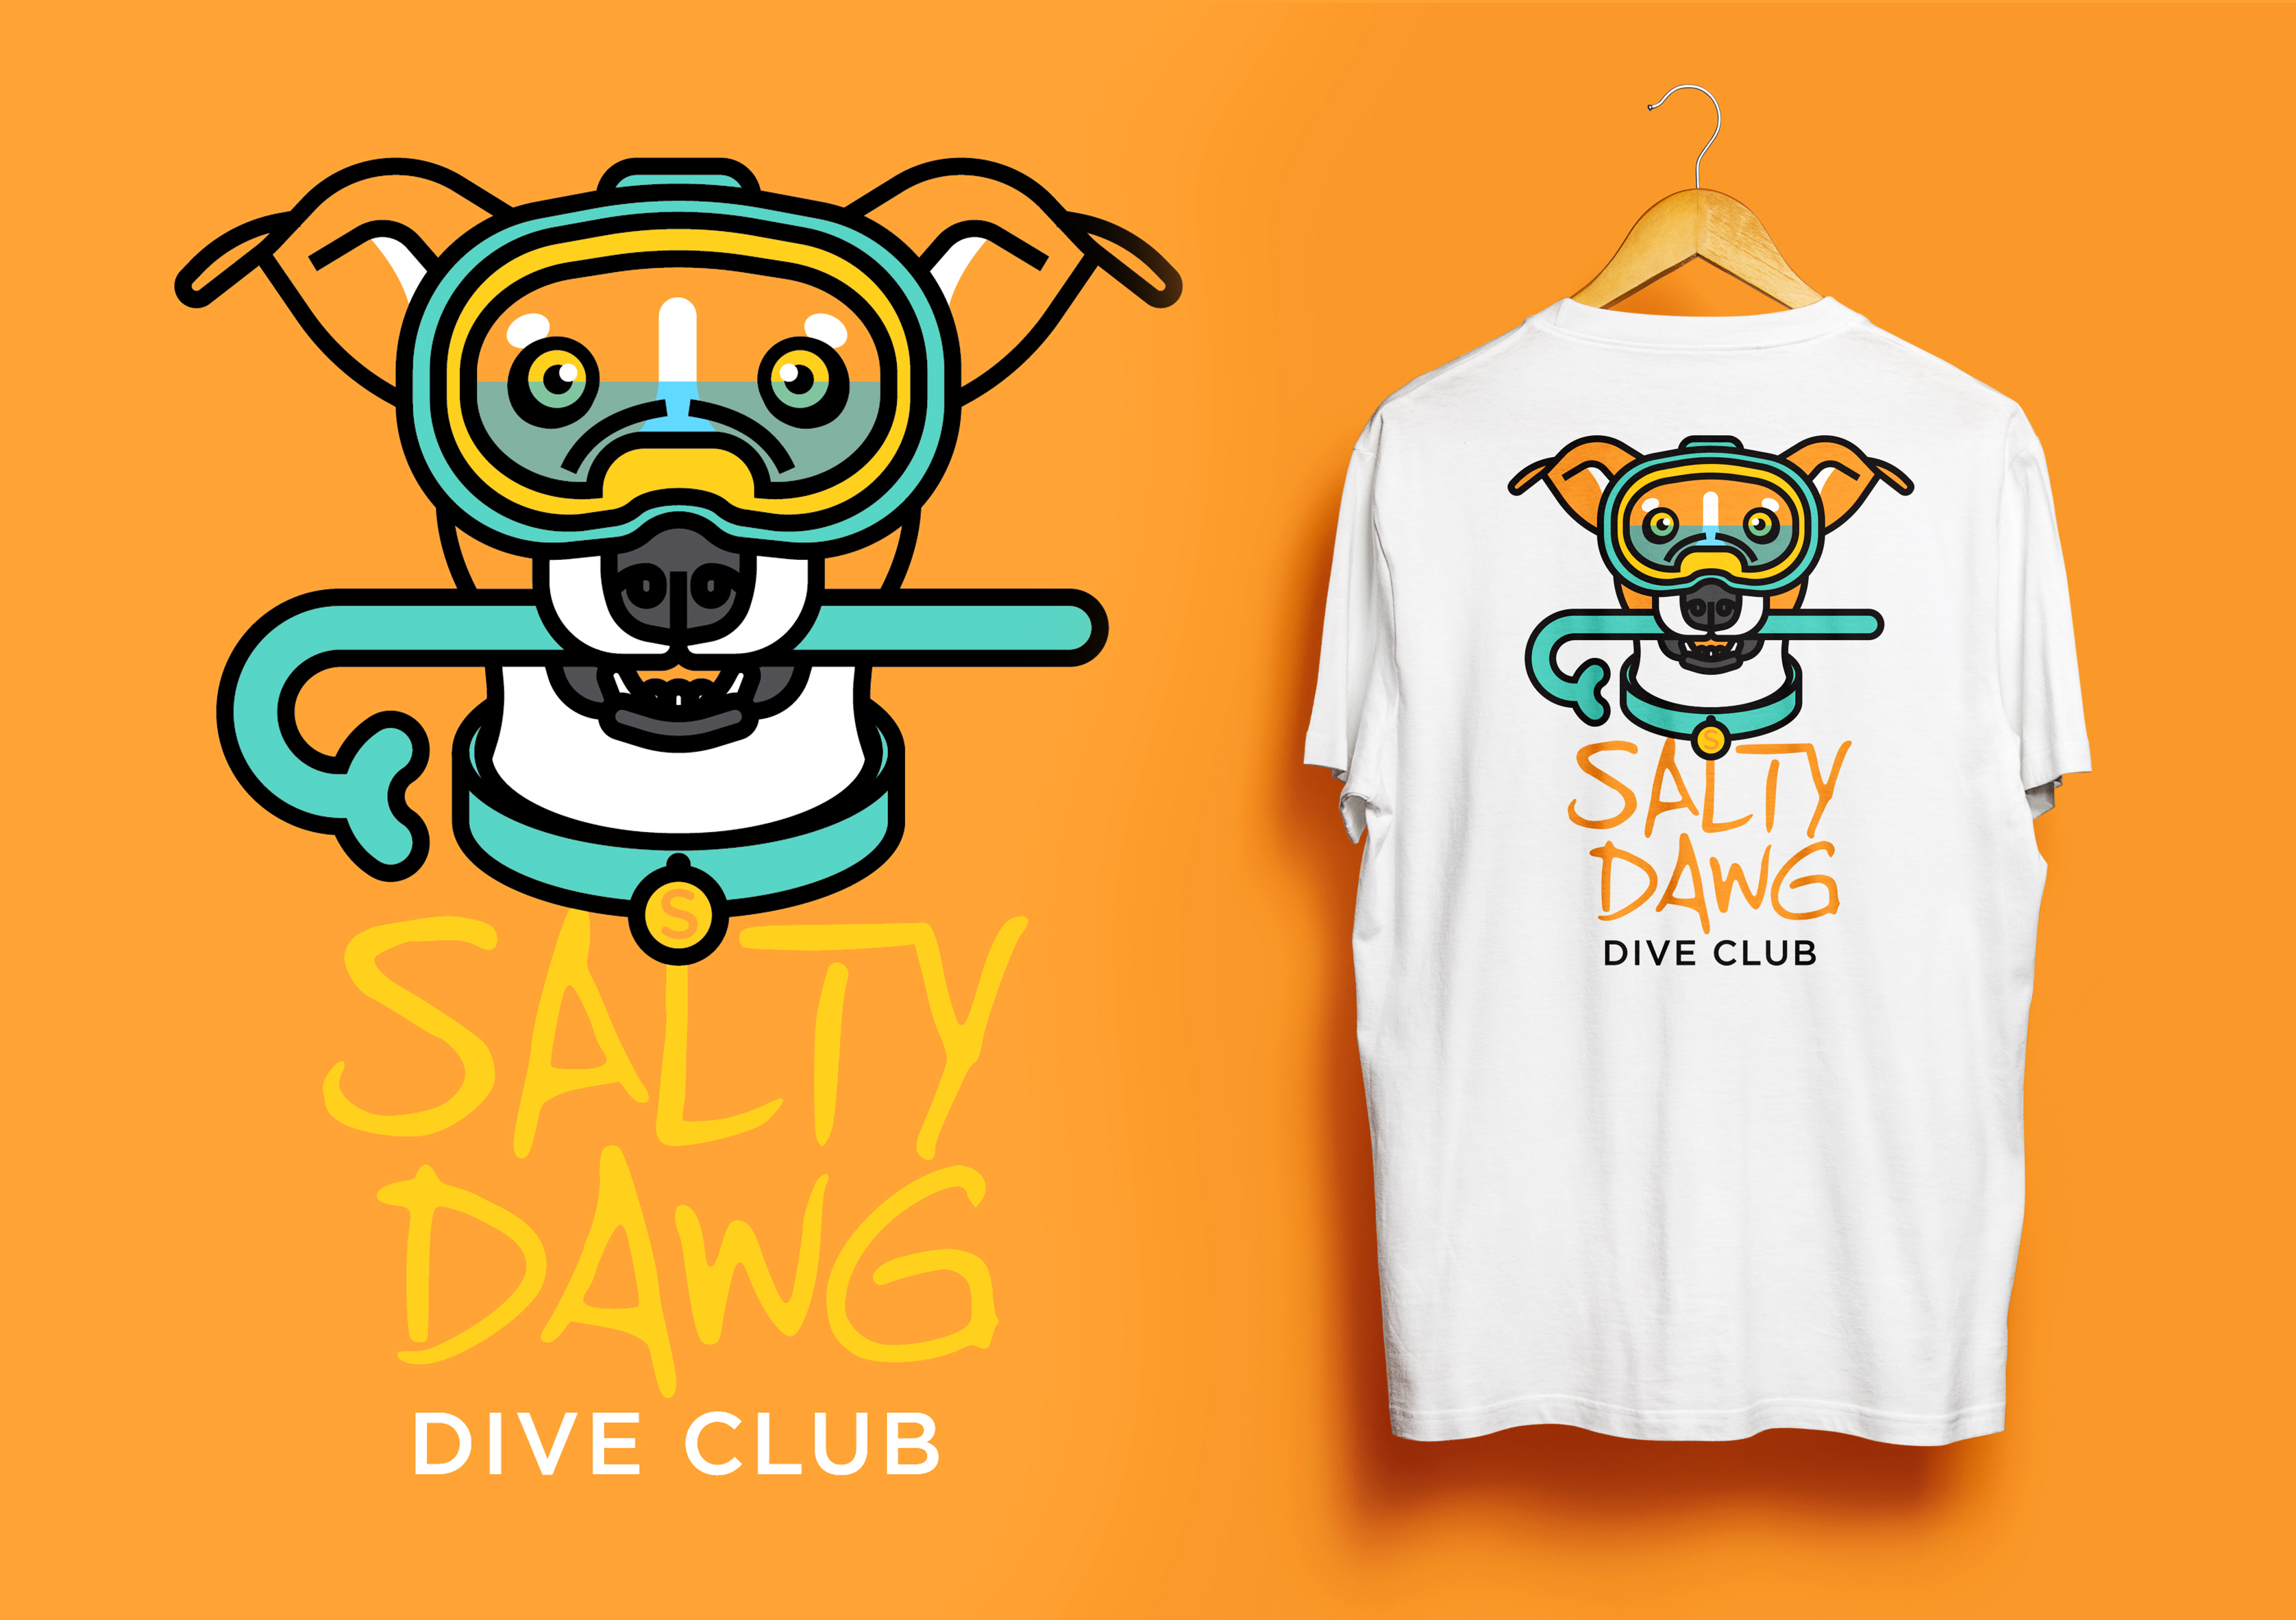 Salty Dawg Dive Club